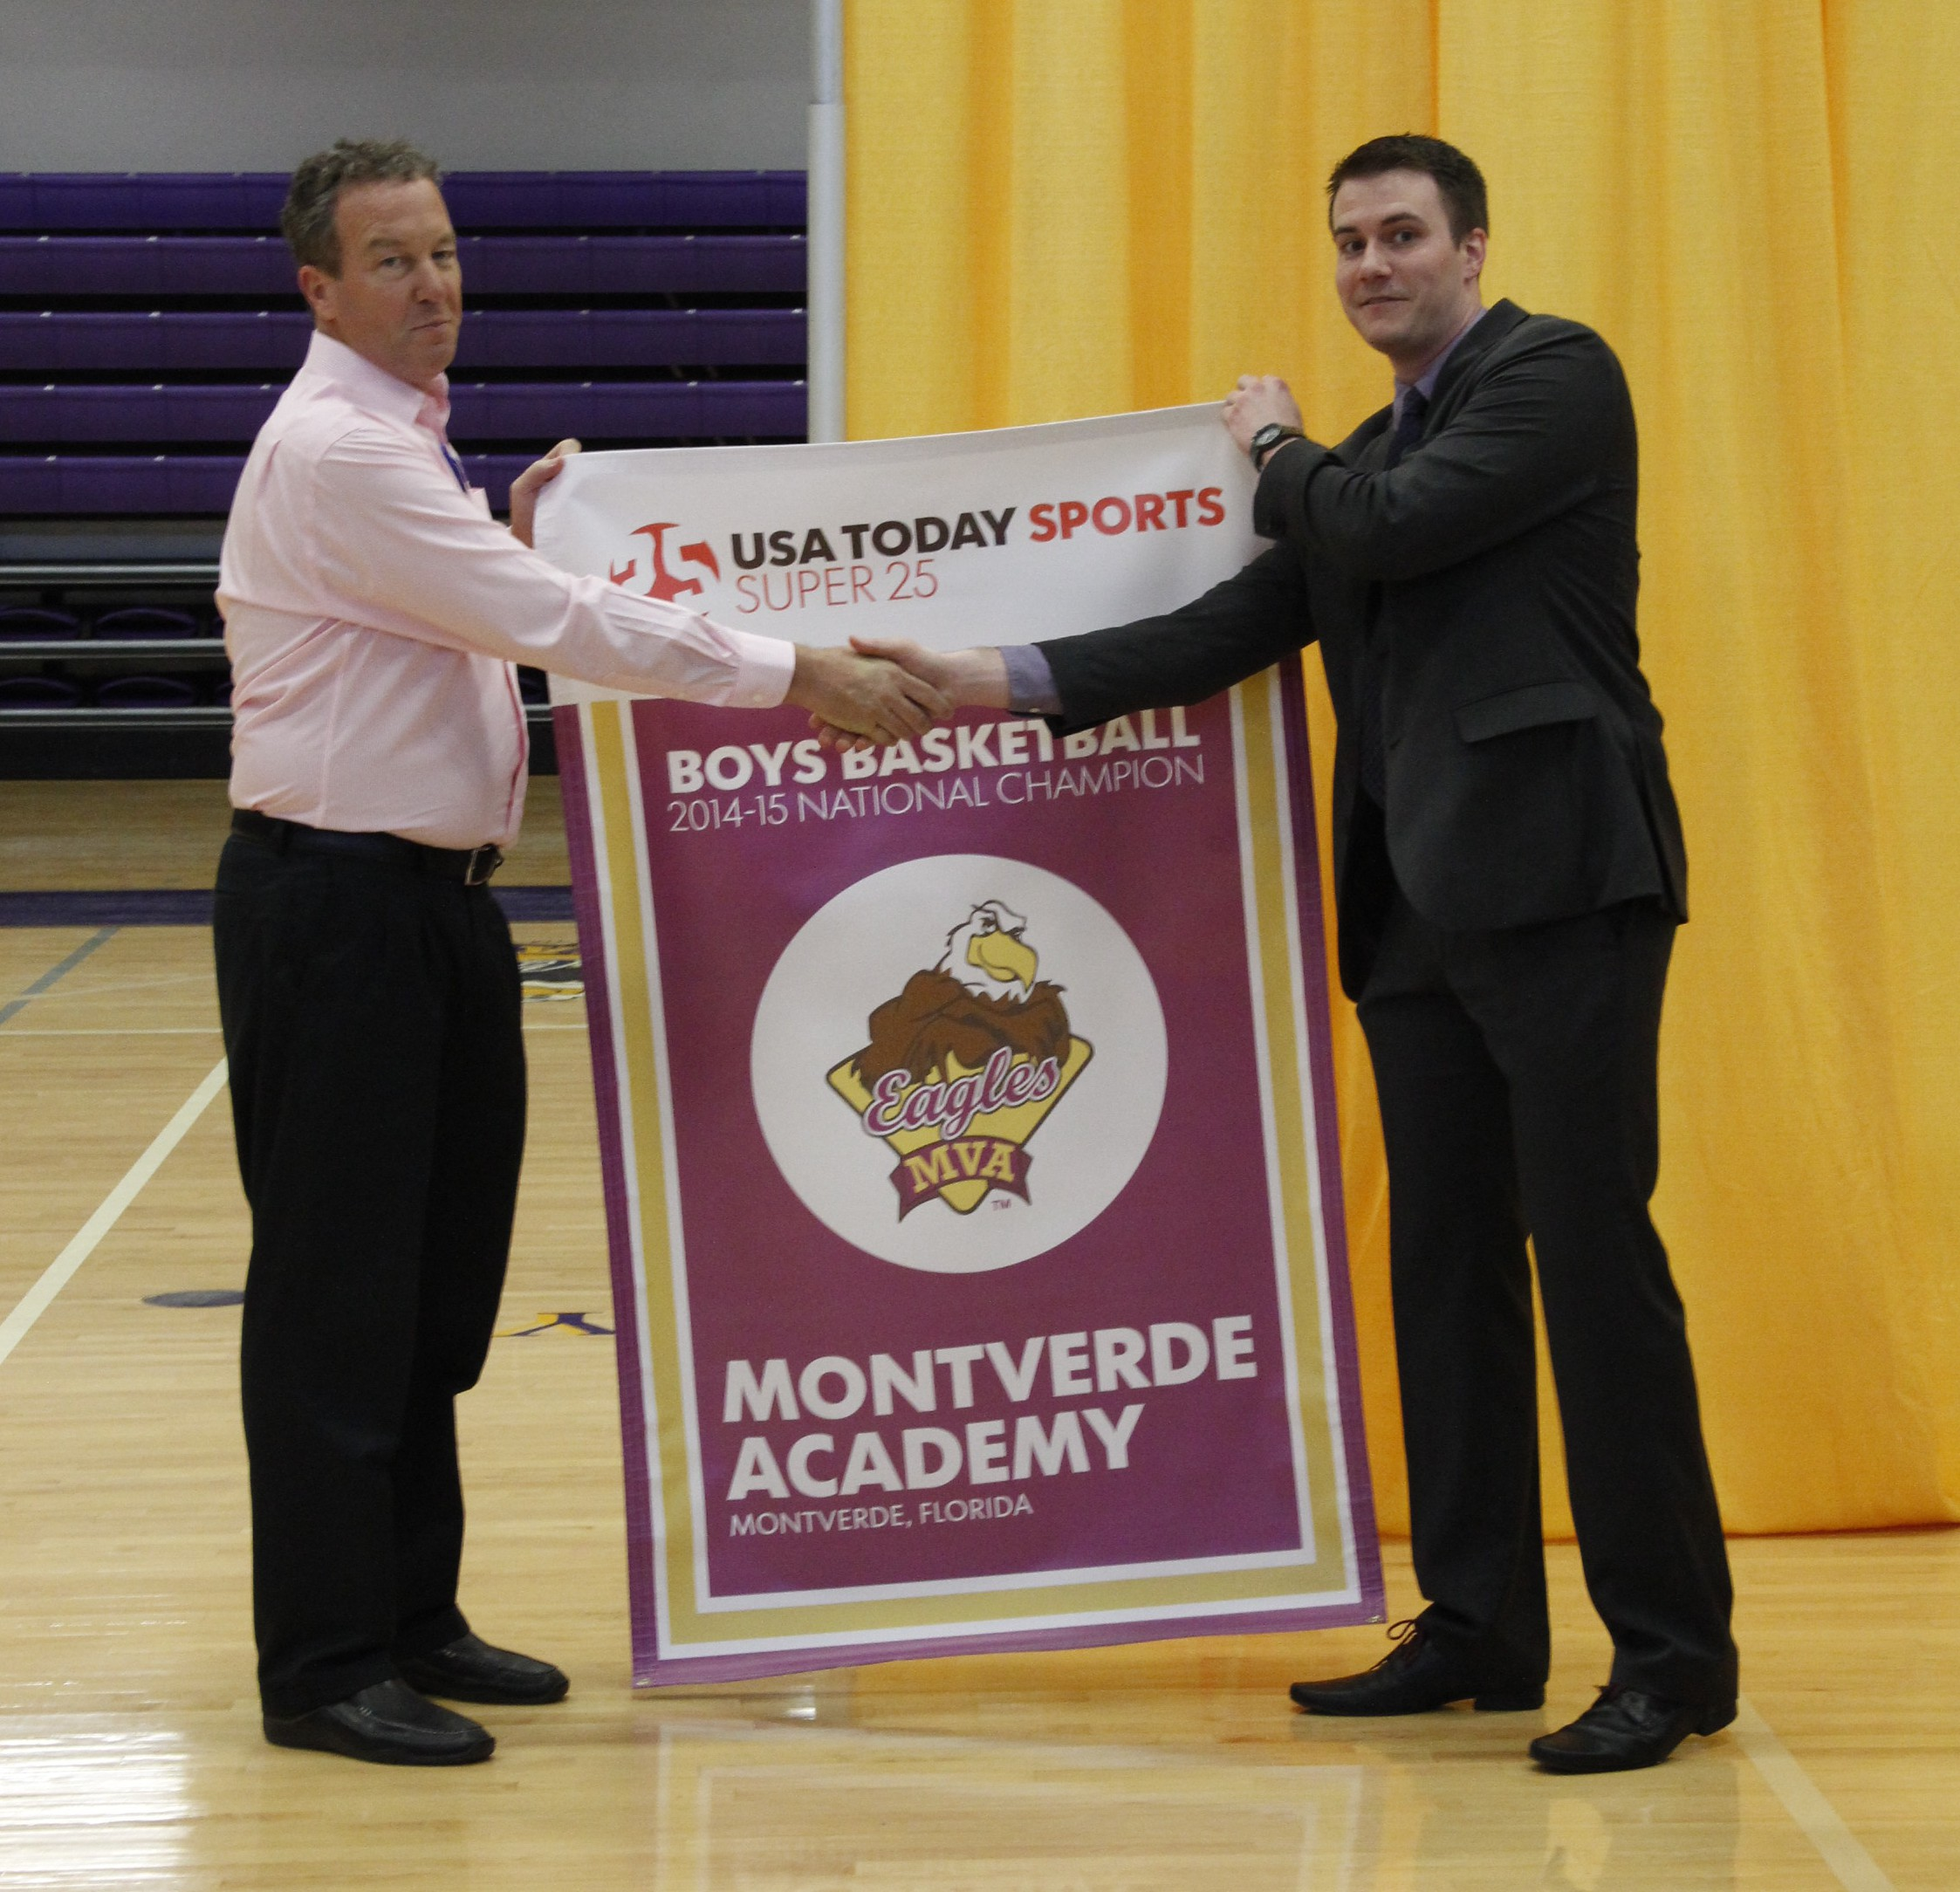 Montverde Academy basketball coach Kevin Boyle (left) accepts the Super 25 national championship banner from Matt Wade of USA TODAY Sports during a ceremony at the school (Photo: Montverde Academy)